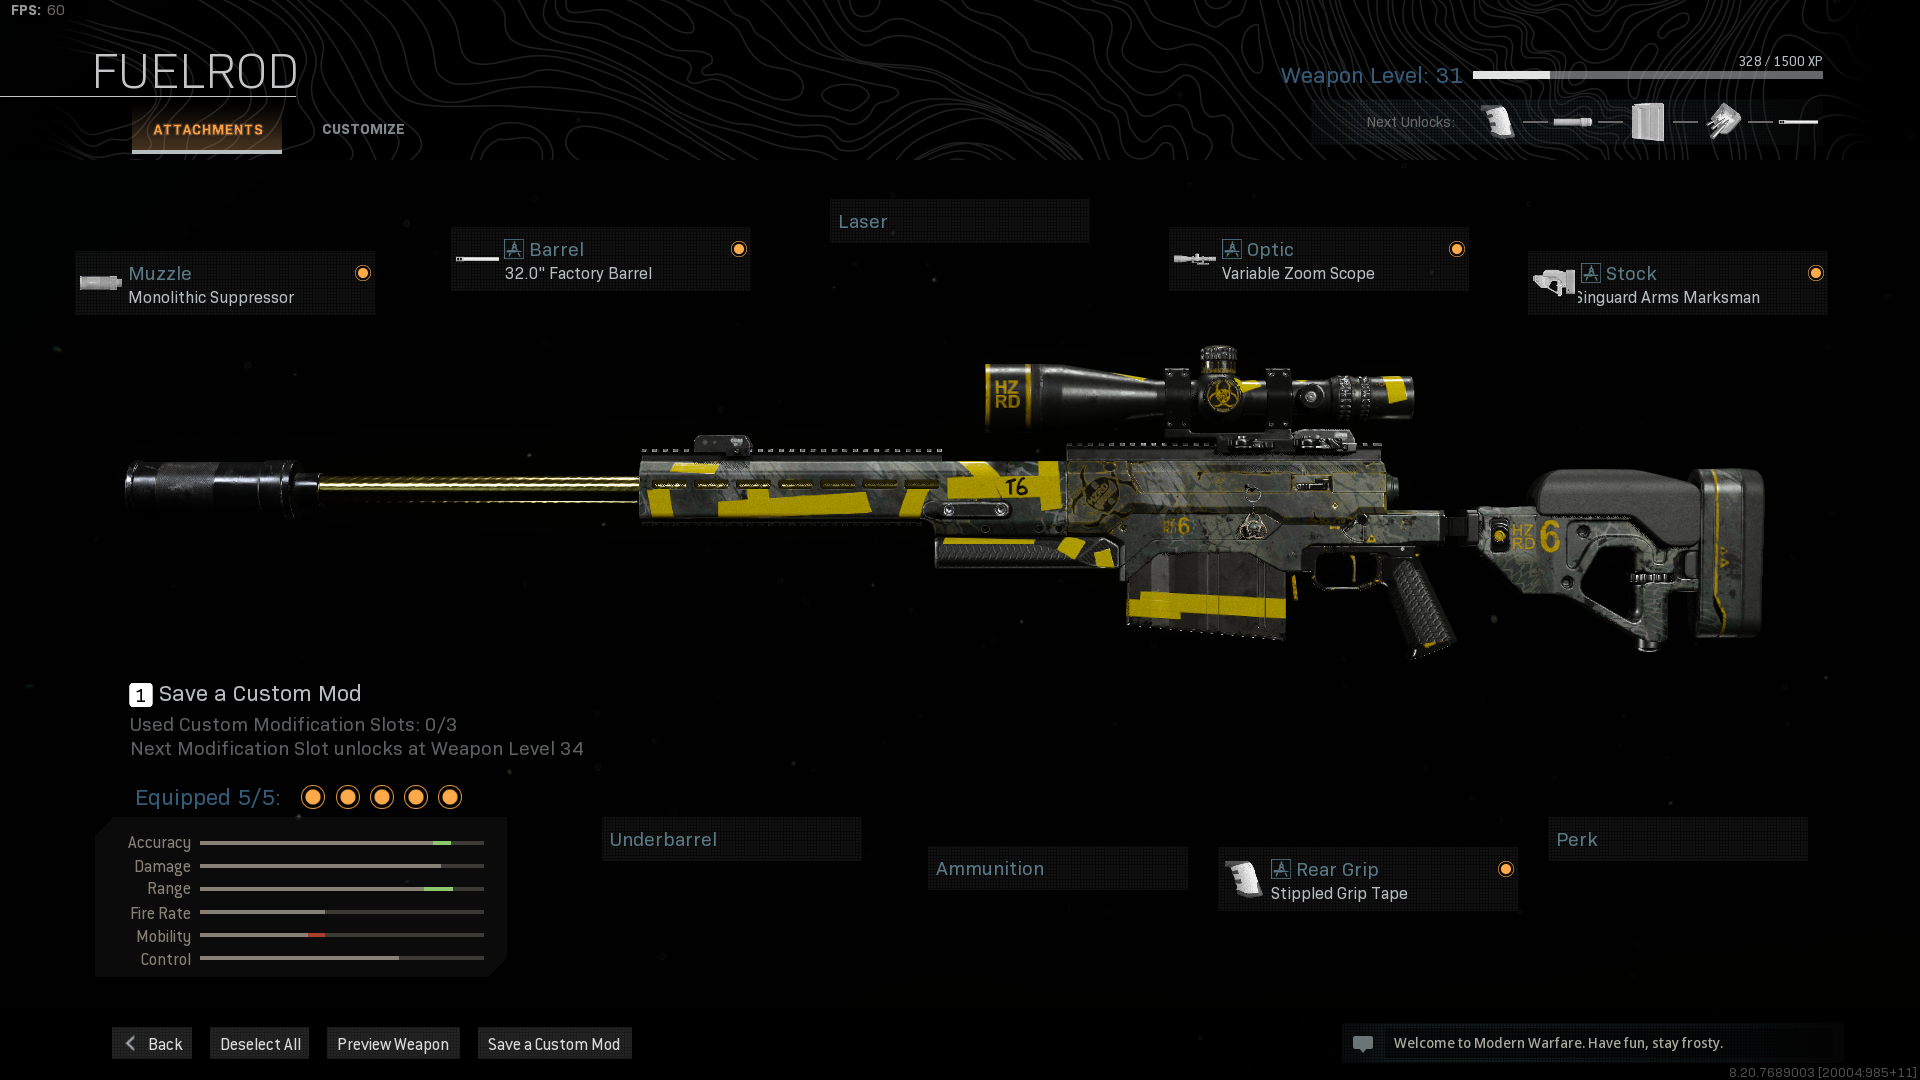 Cod Warzone Ax 50 Loadout Guide Best Loadout For The Ax 50